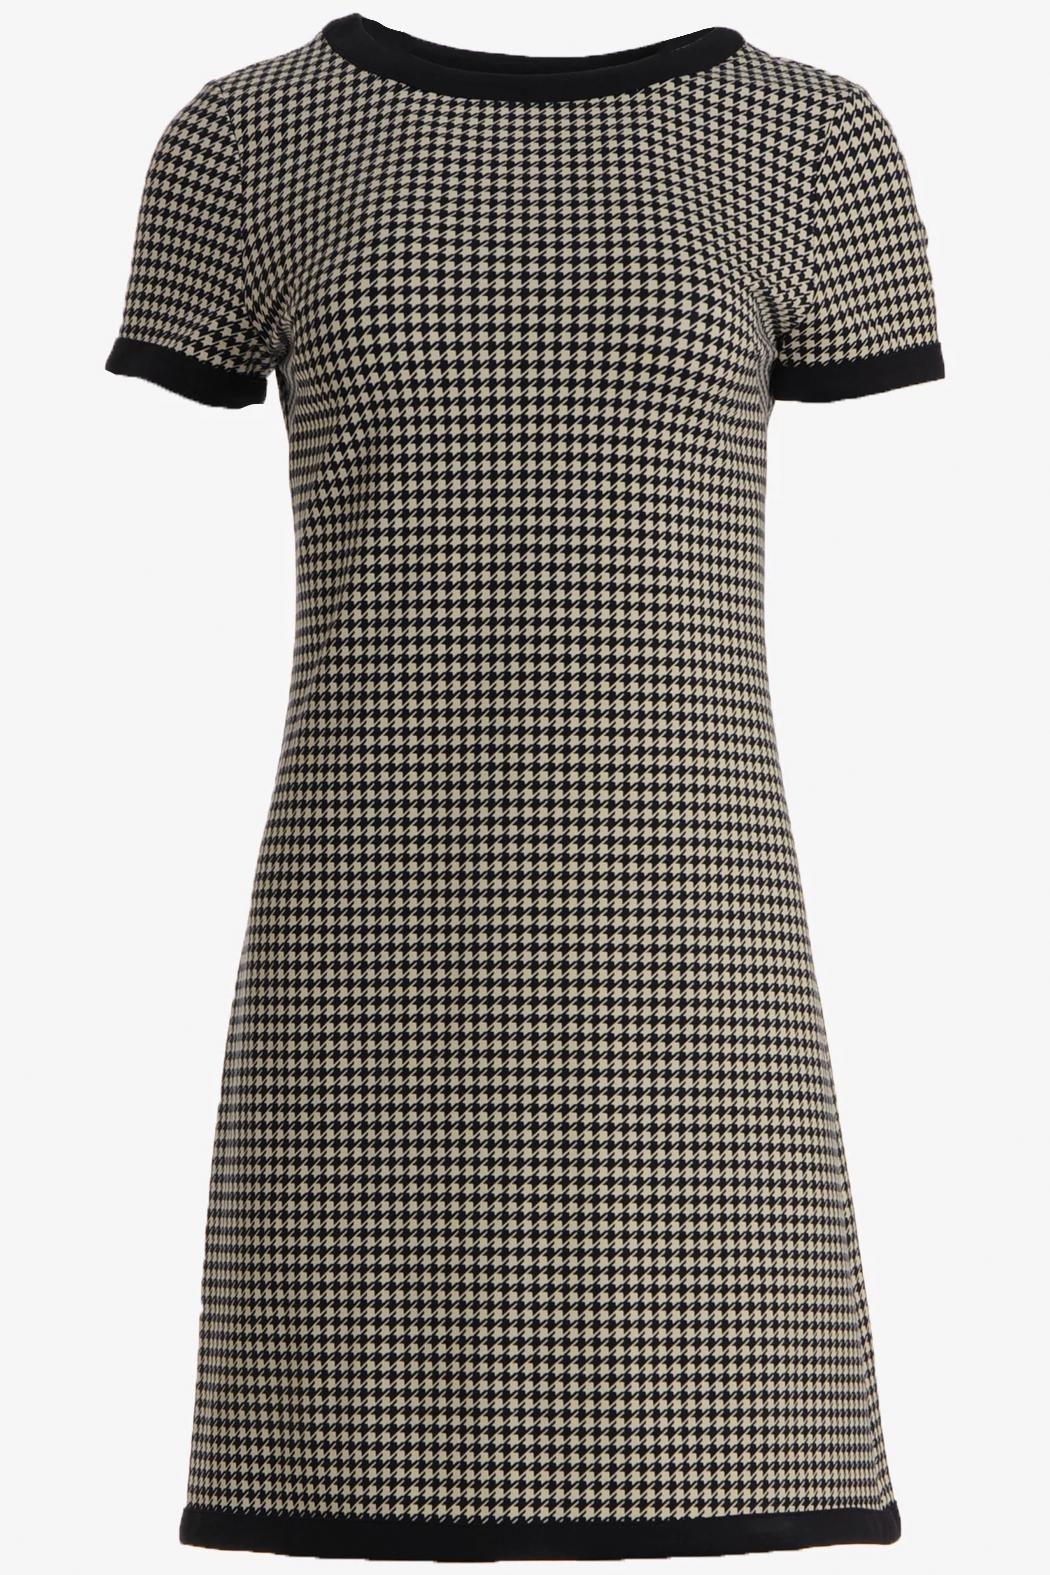 Jude Connally Parker Ponte Dress - Side Cropped Image